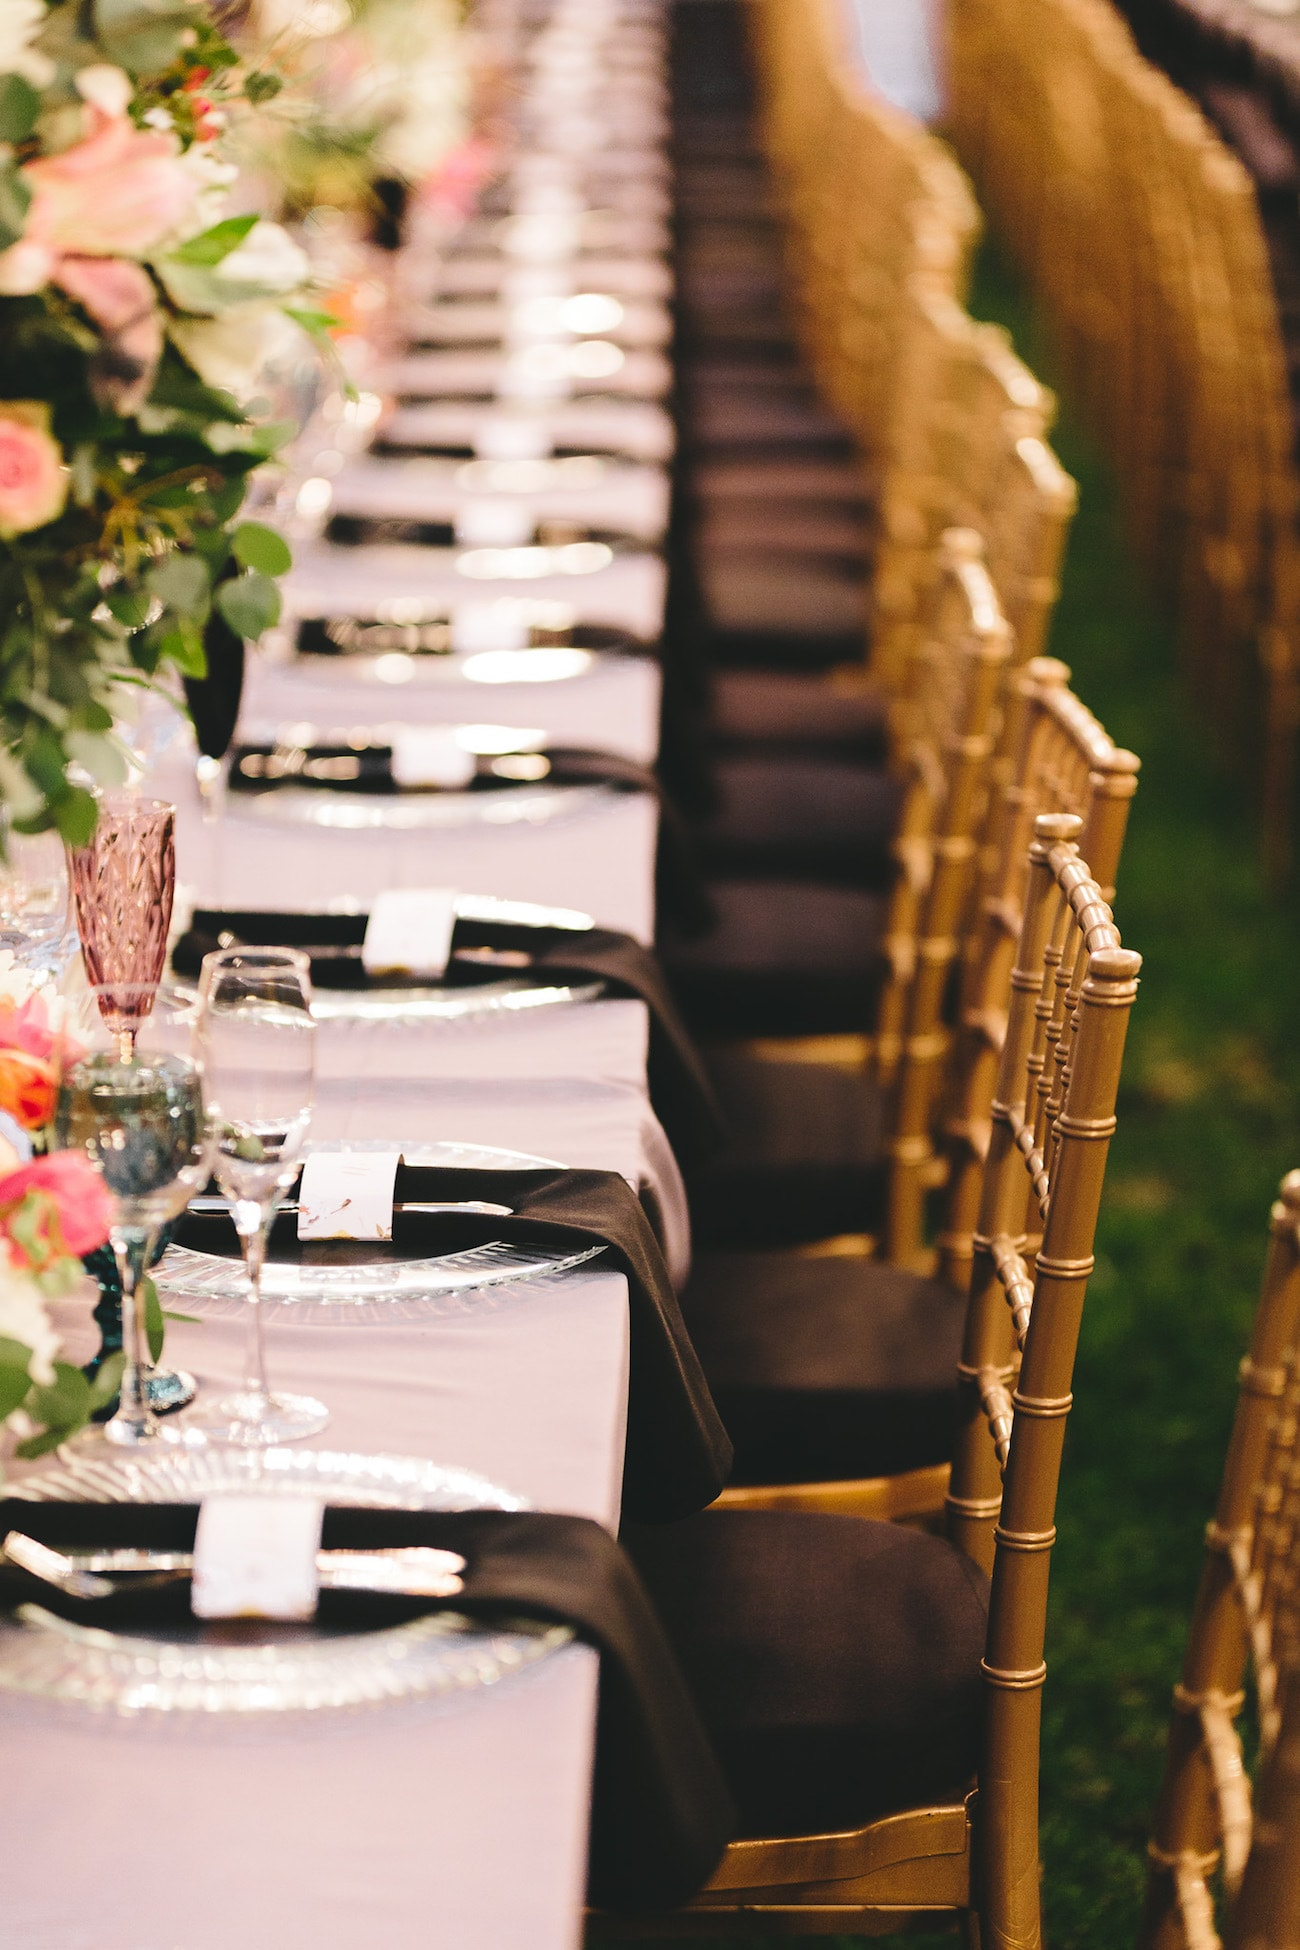 Table Decor with Black Napkins and Colorful Glassware | Credit: Charlie Ray Photography